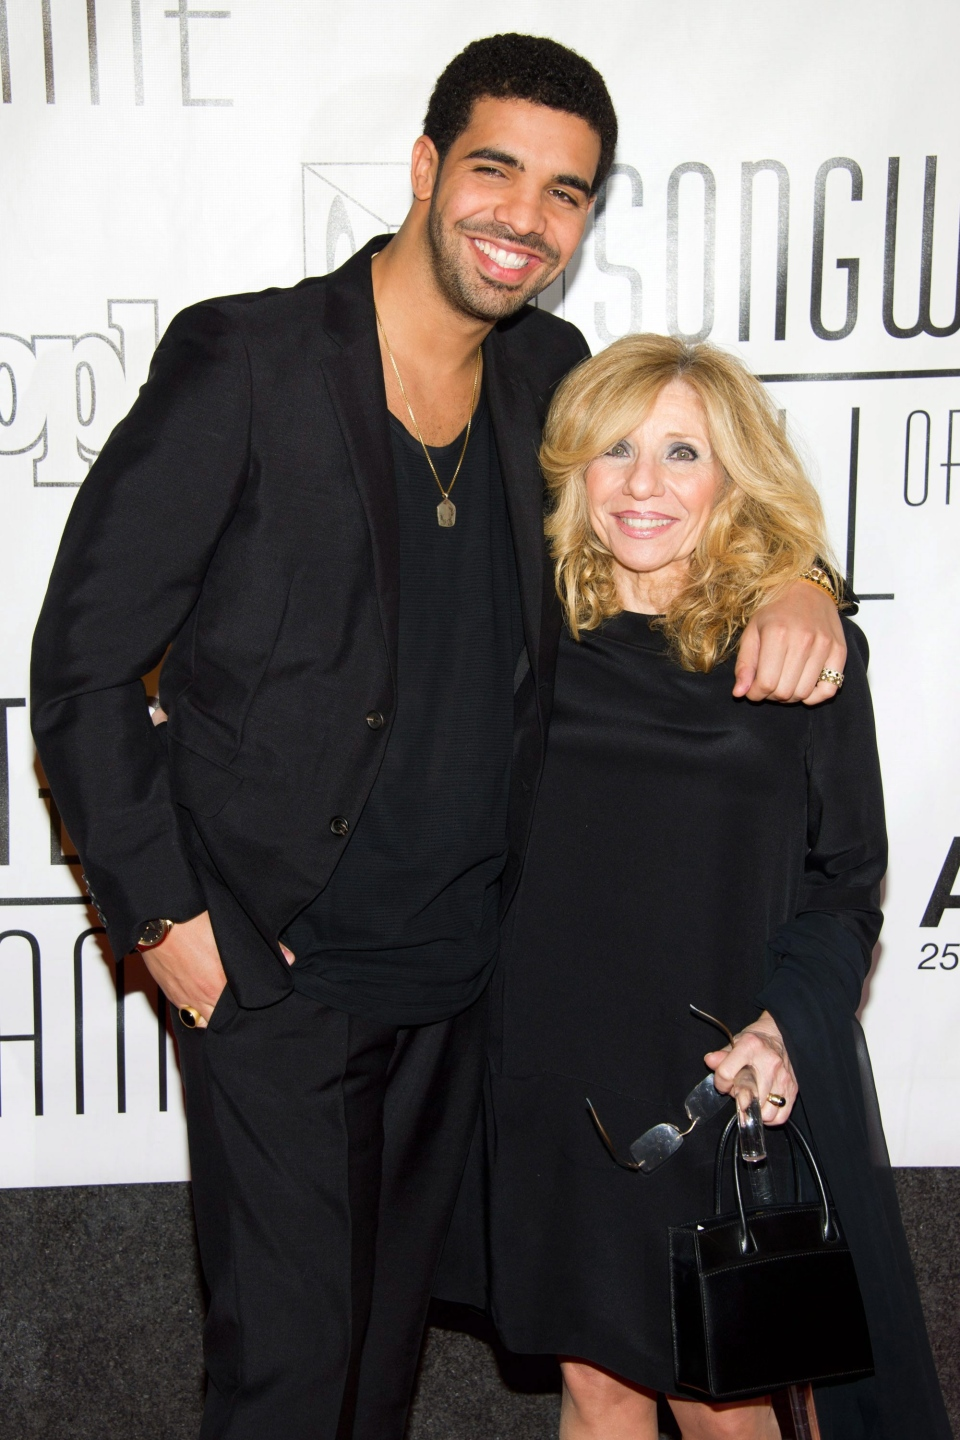 Drake and his mother Sandi Graham arrive at the 42nd Annual Songwriters Hall of Fame Awards in New York, Thursday, June 16, 2011. (AP / Charles Sykes)